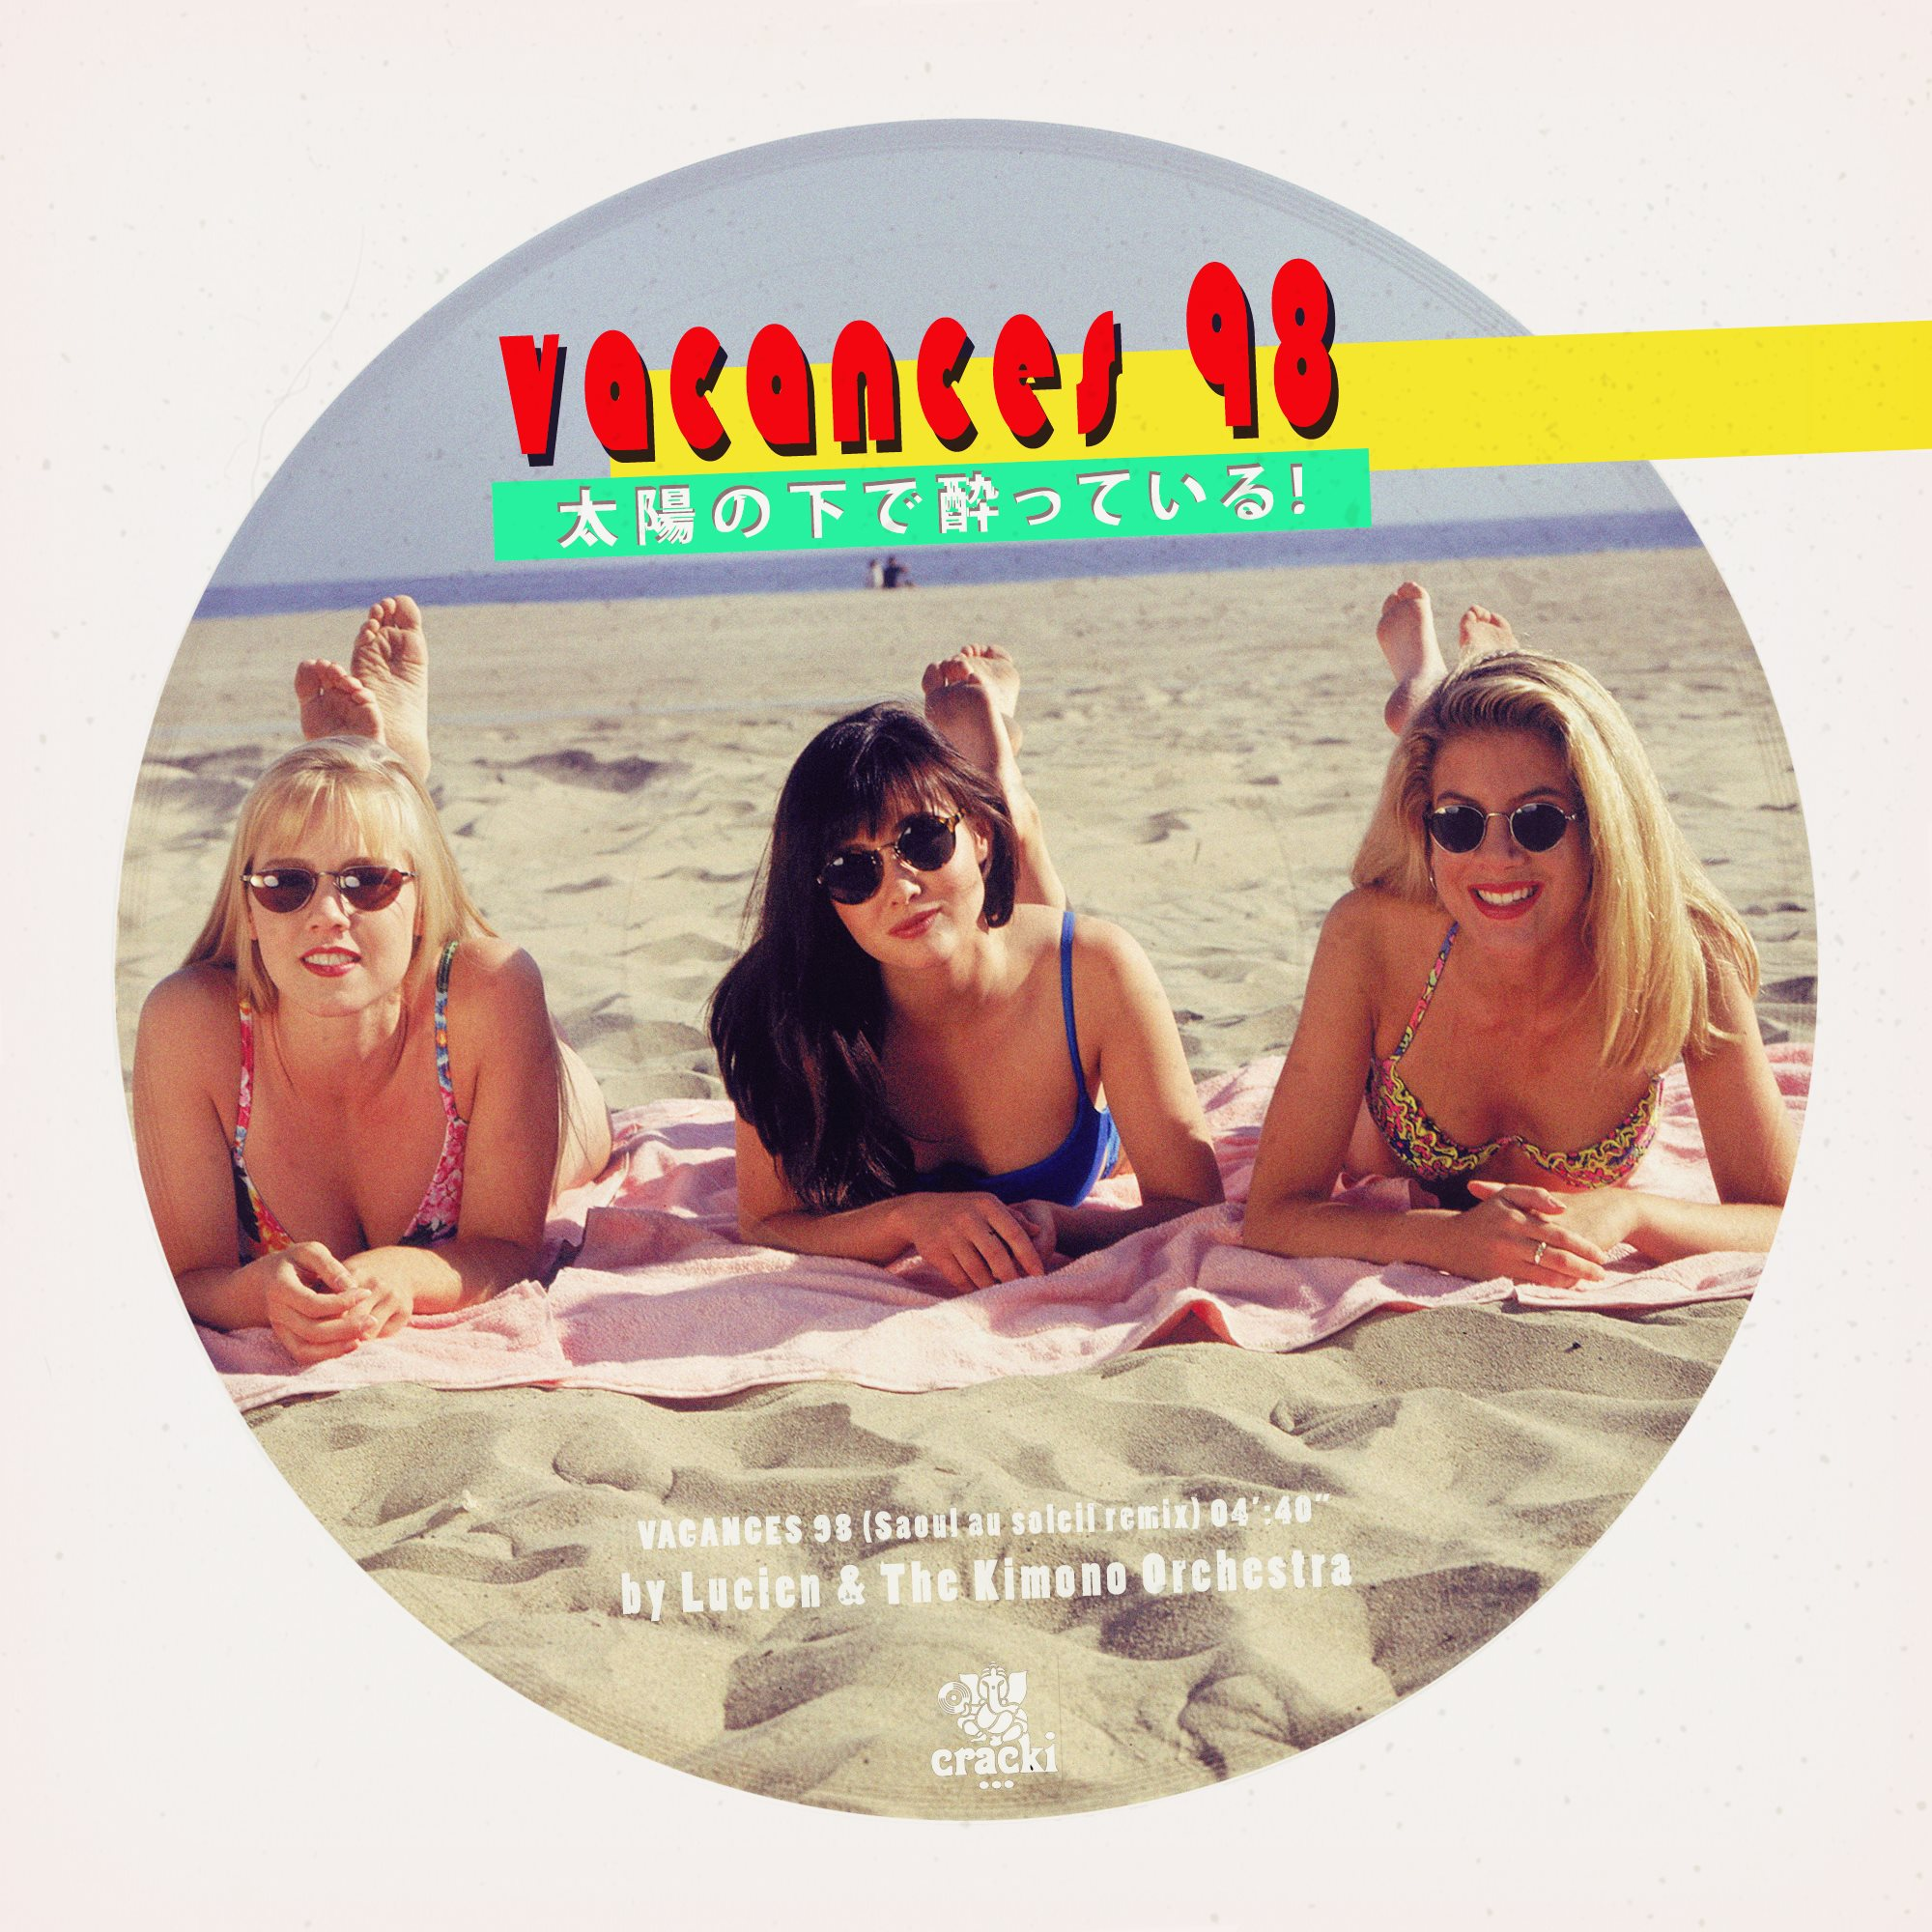 Lucien&TKO cover Vacances 98